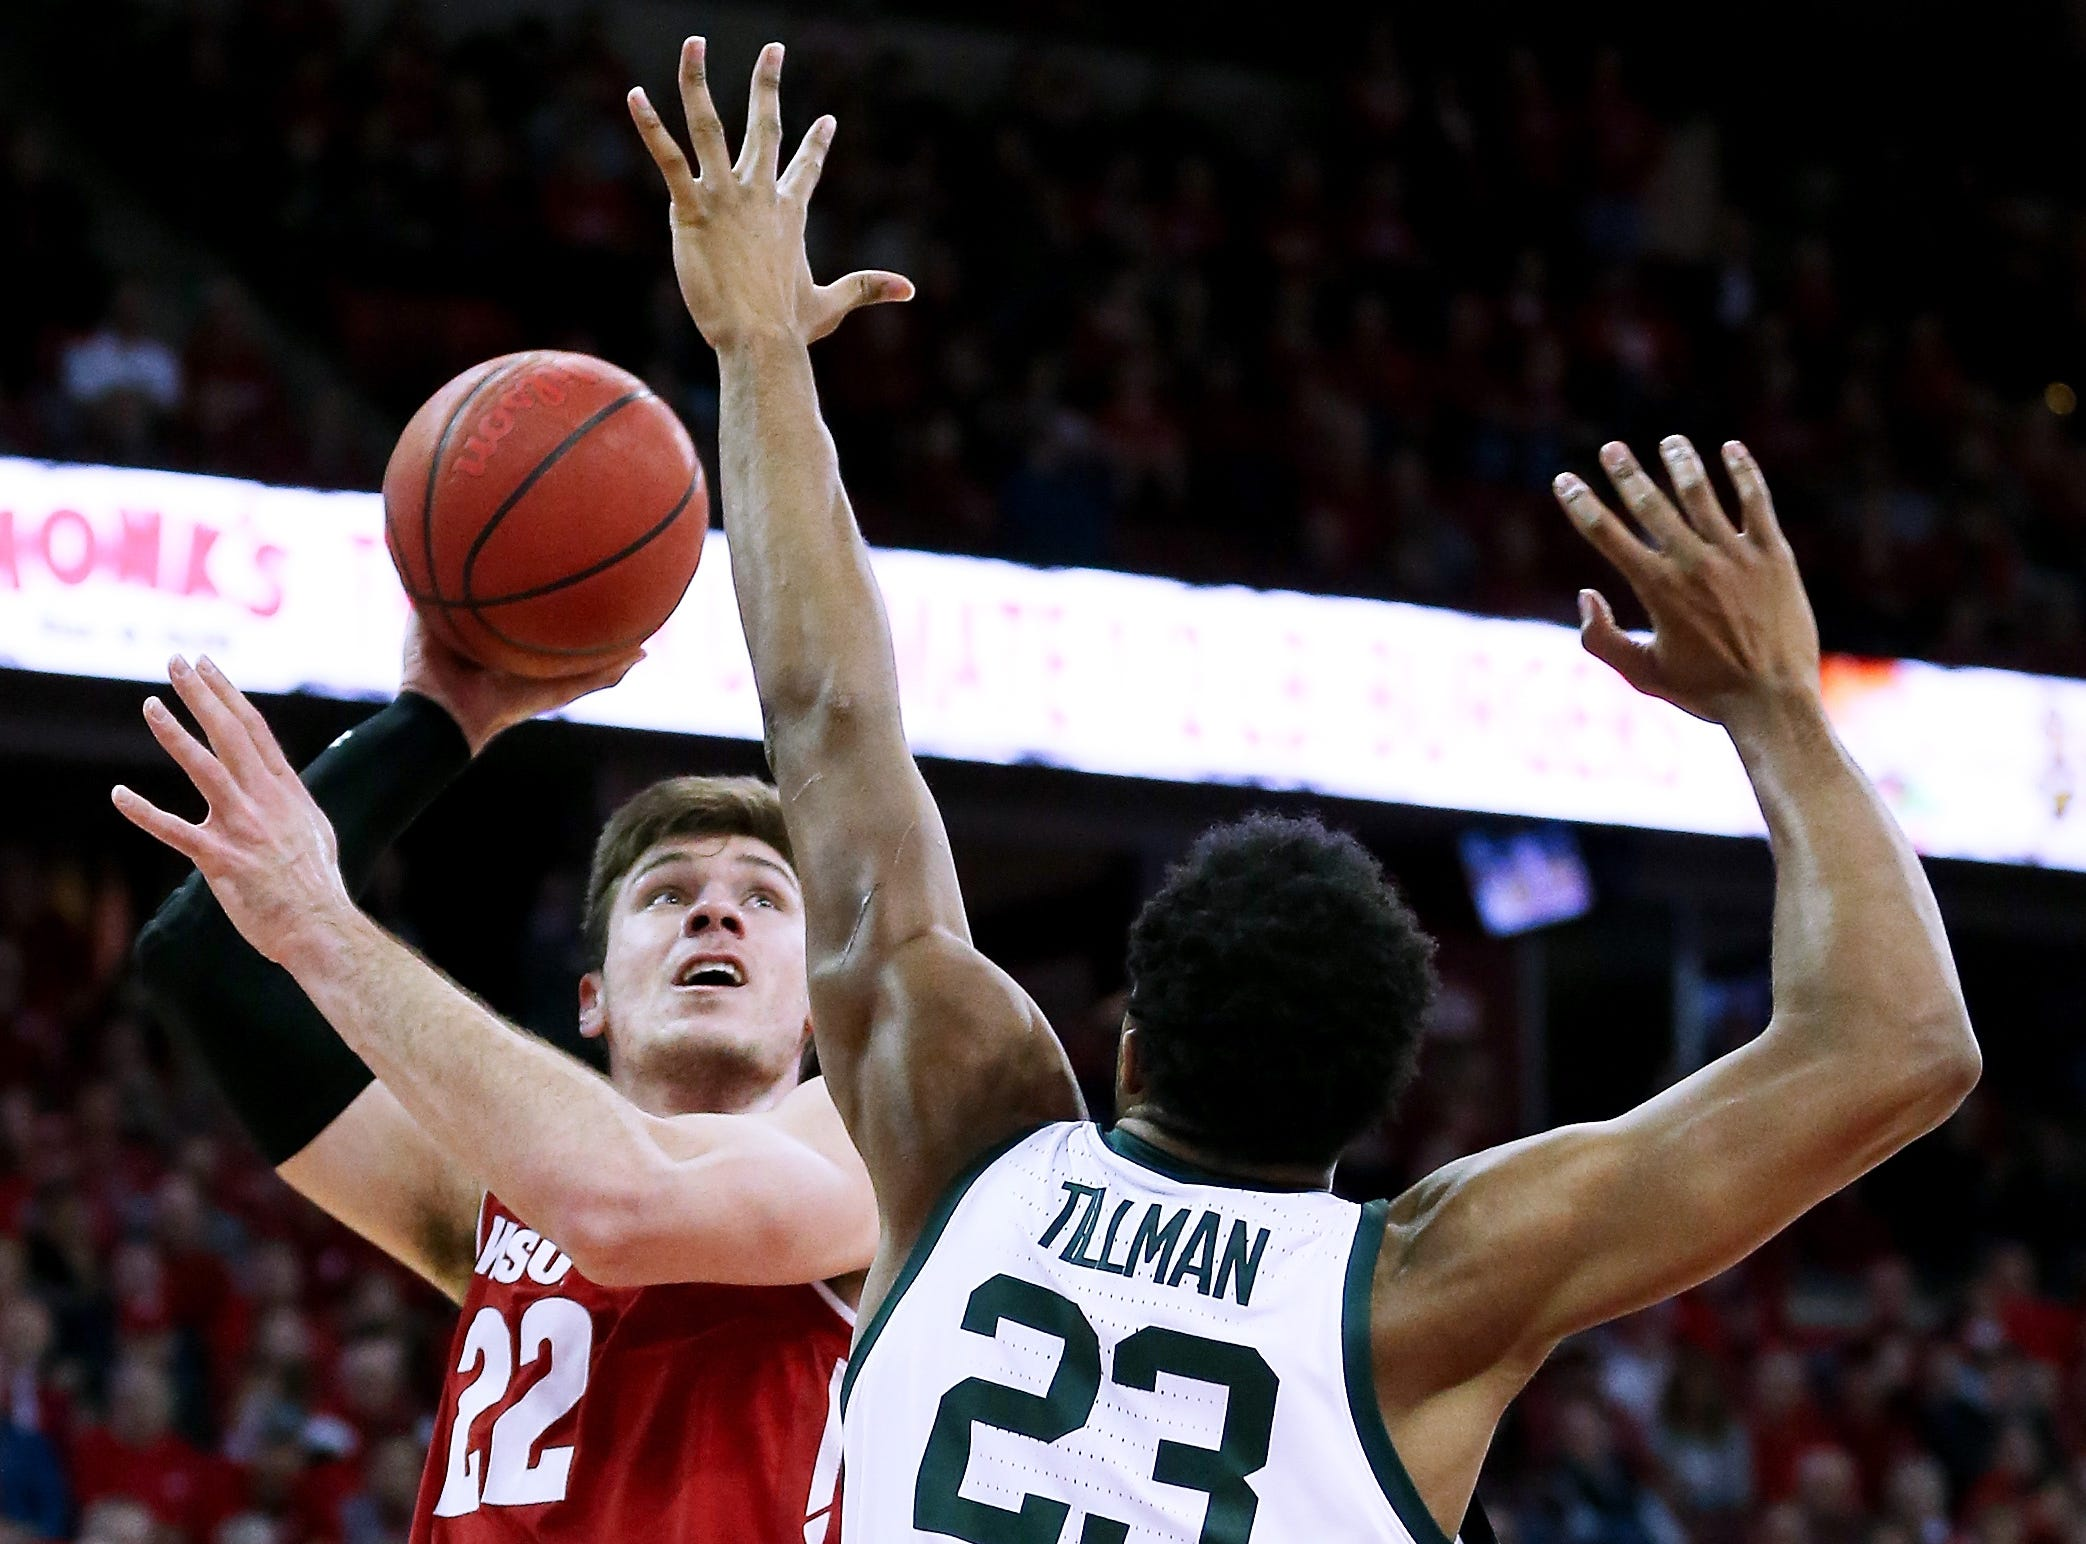 Ethan Happ #22 of the Wisconsin Badgers attempts a shot while being guarded by Xavier Tillman #23 of the Michigan State Spartans in the first half at the Kohl Center on February 12, 2019 in Madison, Wisconsin.